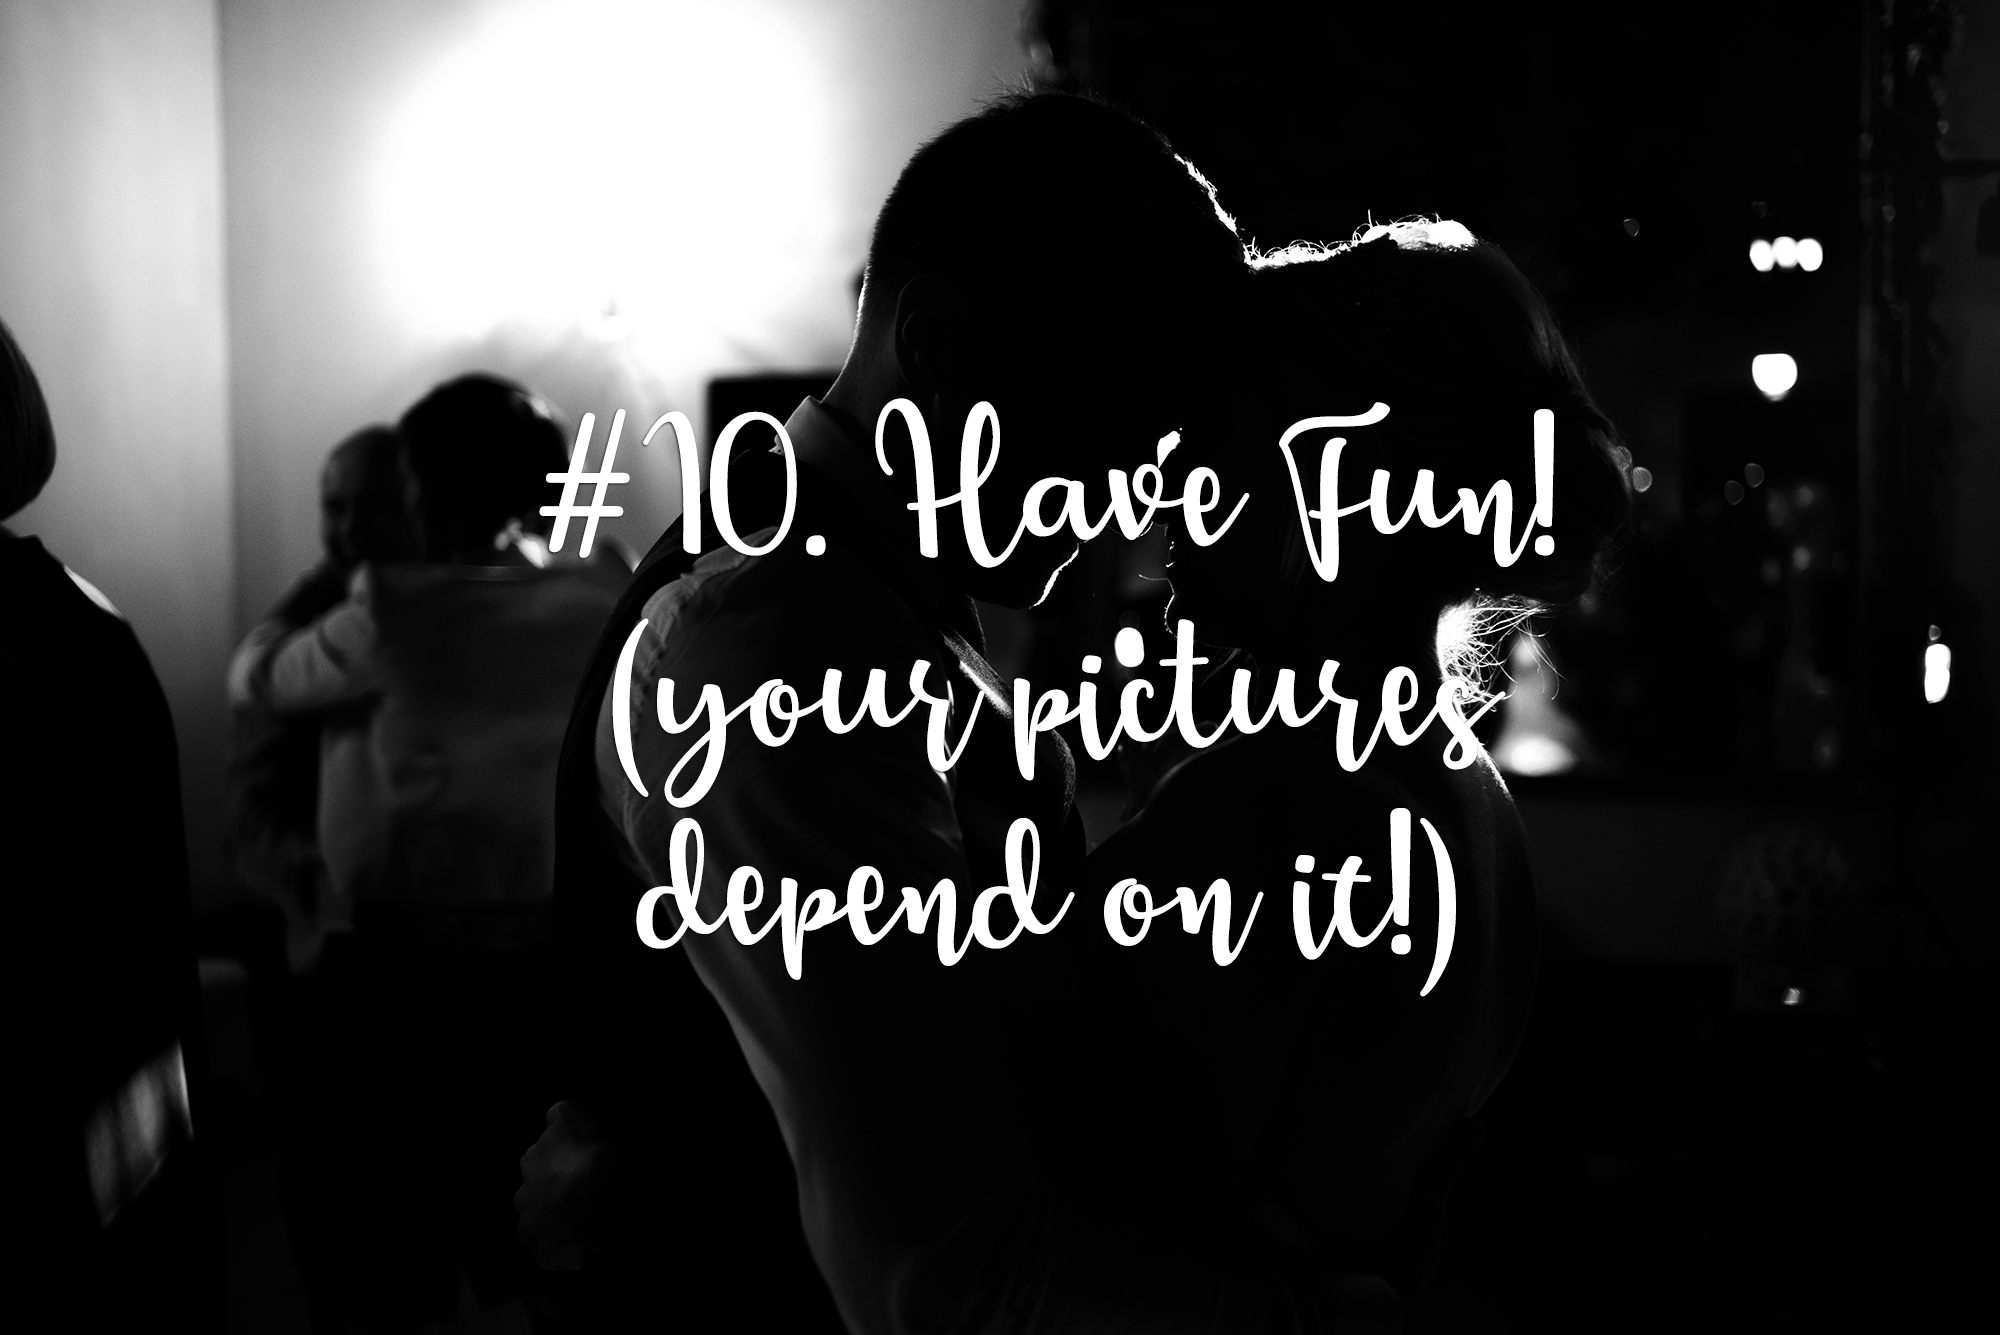 Have fun (your pictures depend on it!)